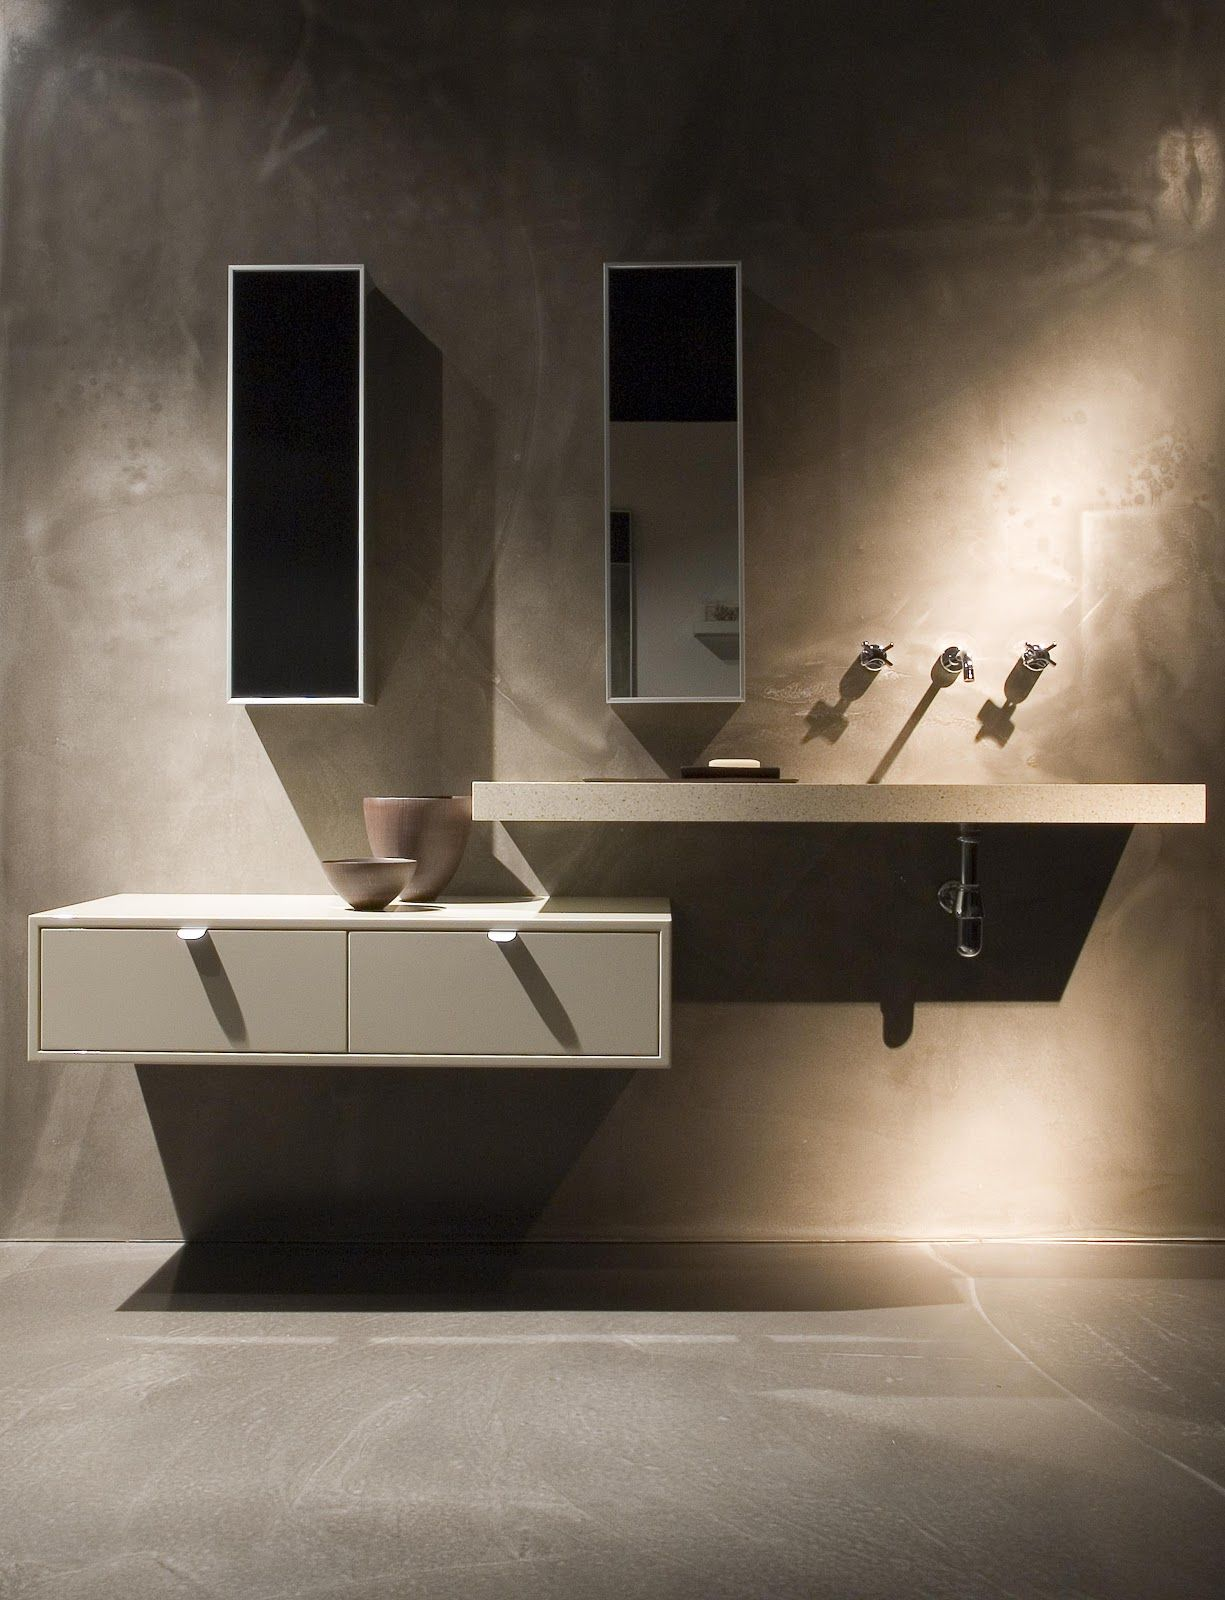 Marvelous Minosa Design: Scoop®ED Washbasin By Minosa™ Luxury Modern Bathroom Vanity  Future Basement Bathroom?